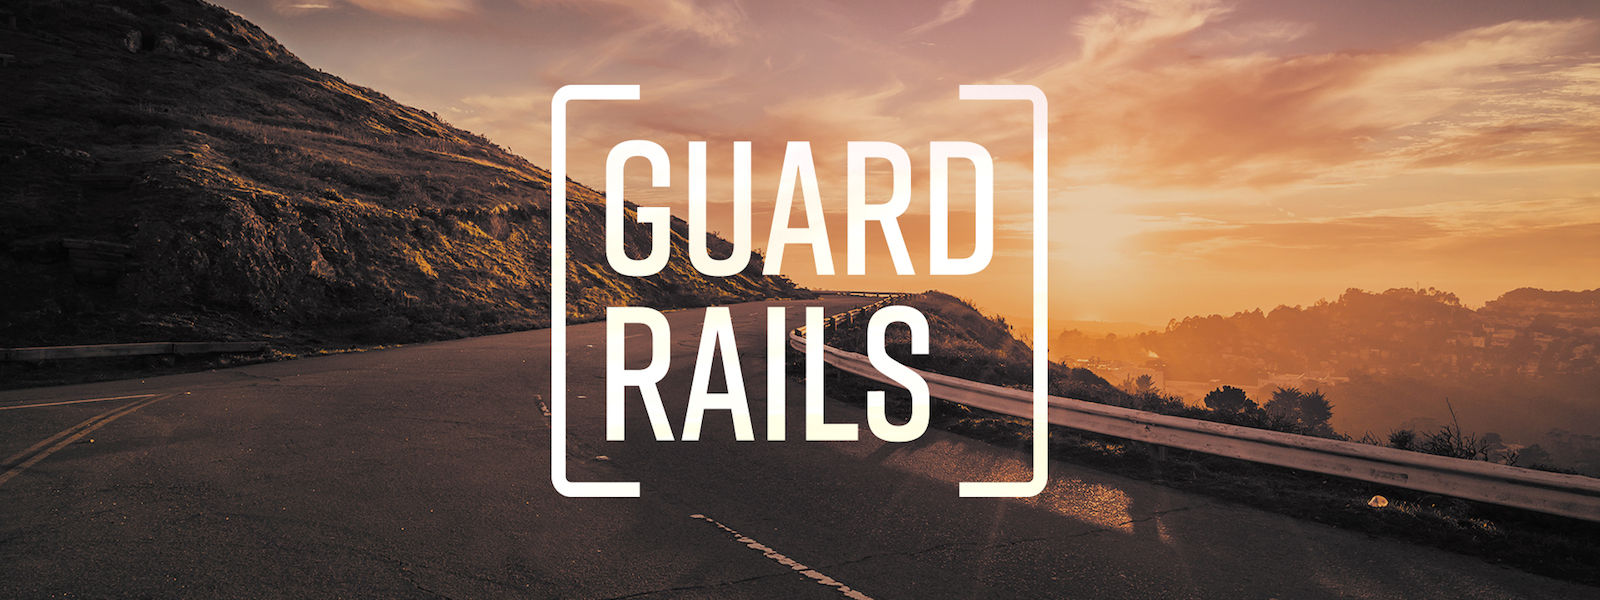 rightnow media streaming video bible study guardrails andy rh rightnowmedia org Guardrails Andy Stanley Part 4 Guardrails Andy Stanley DVD